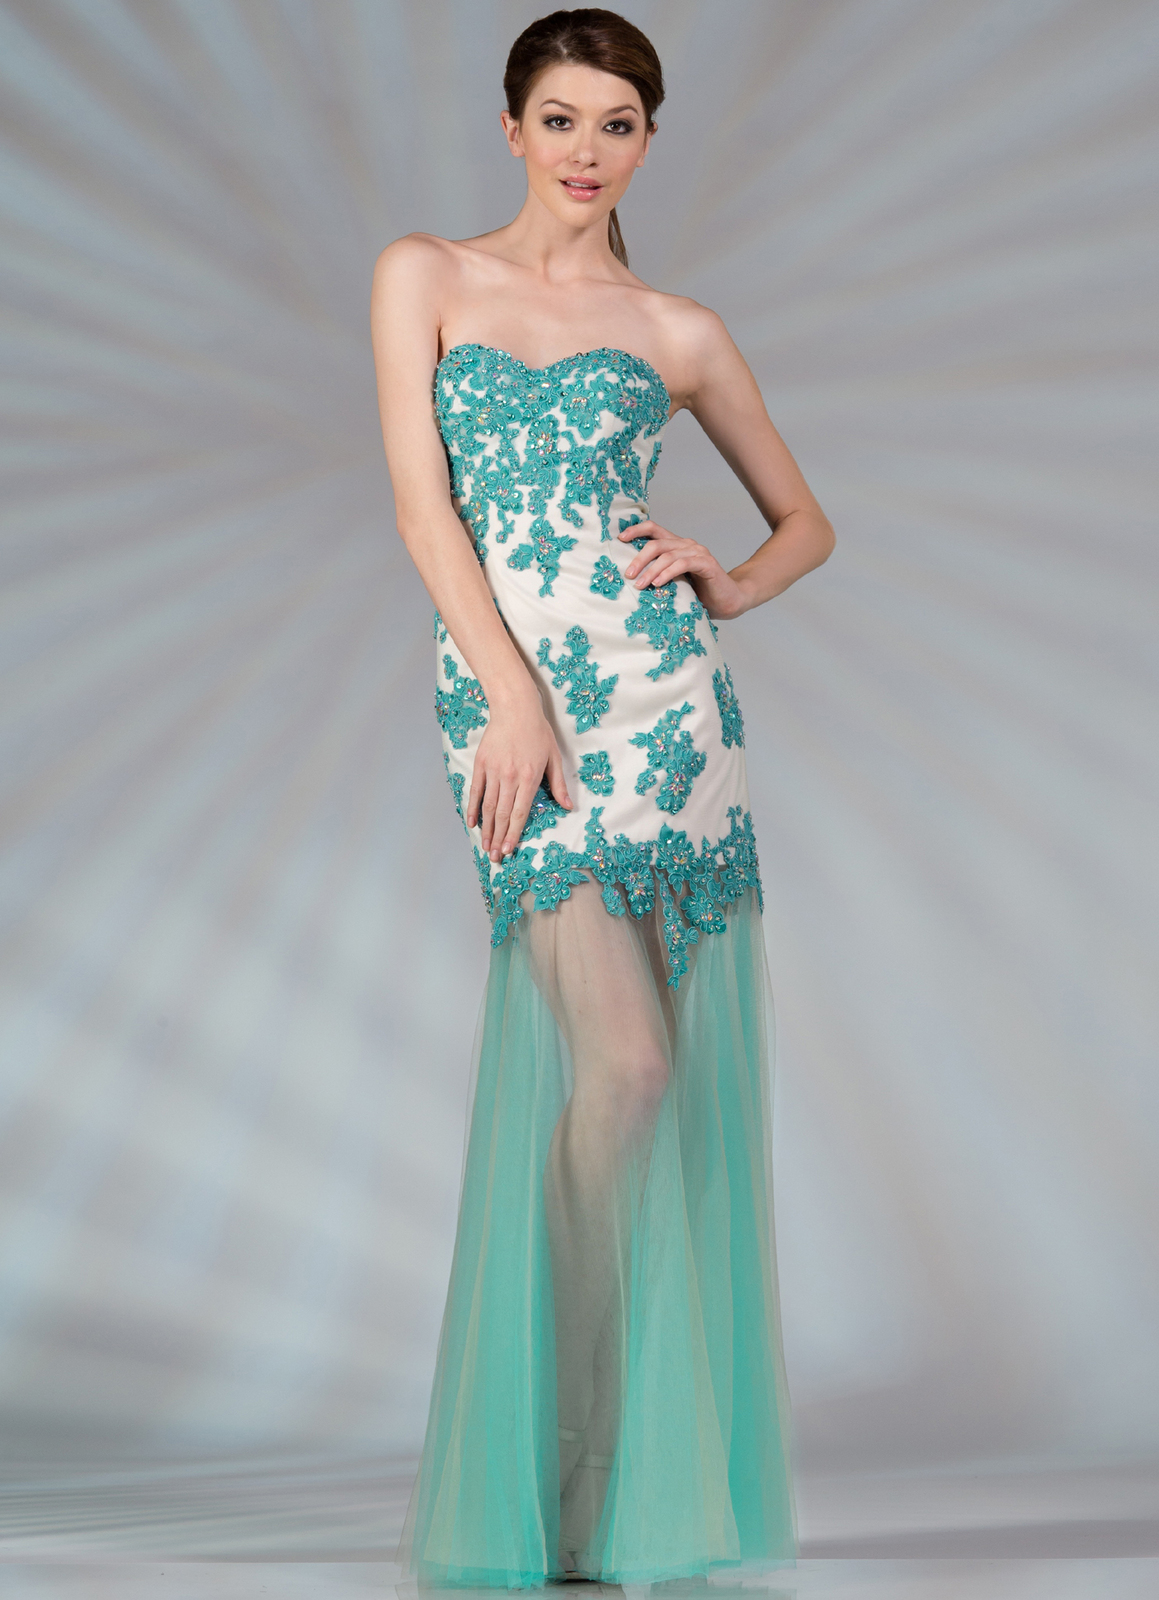 Vintage Floral Embroidery Prom Dress | Sung Boutique L.A.